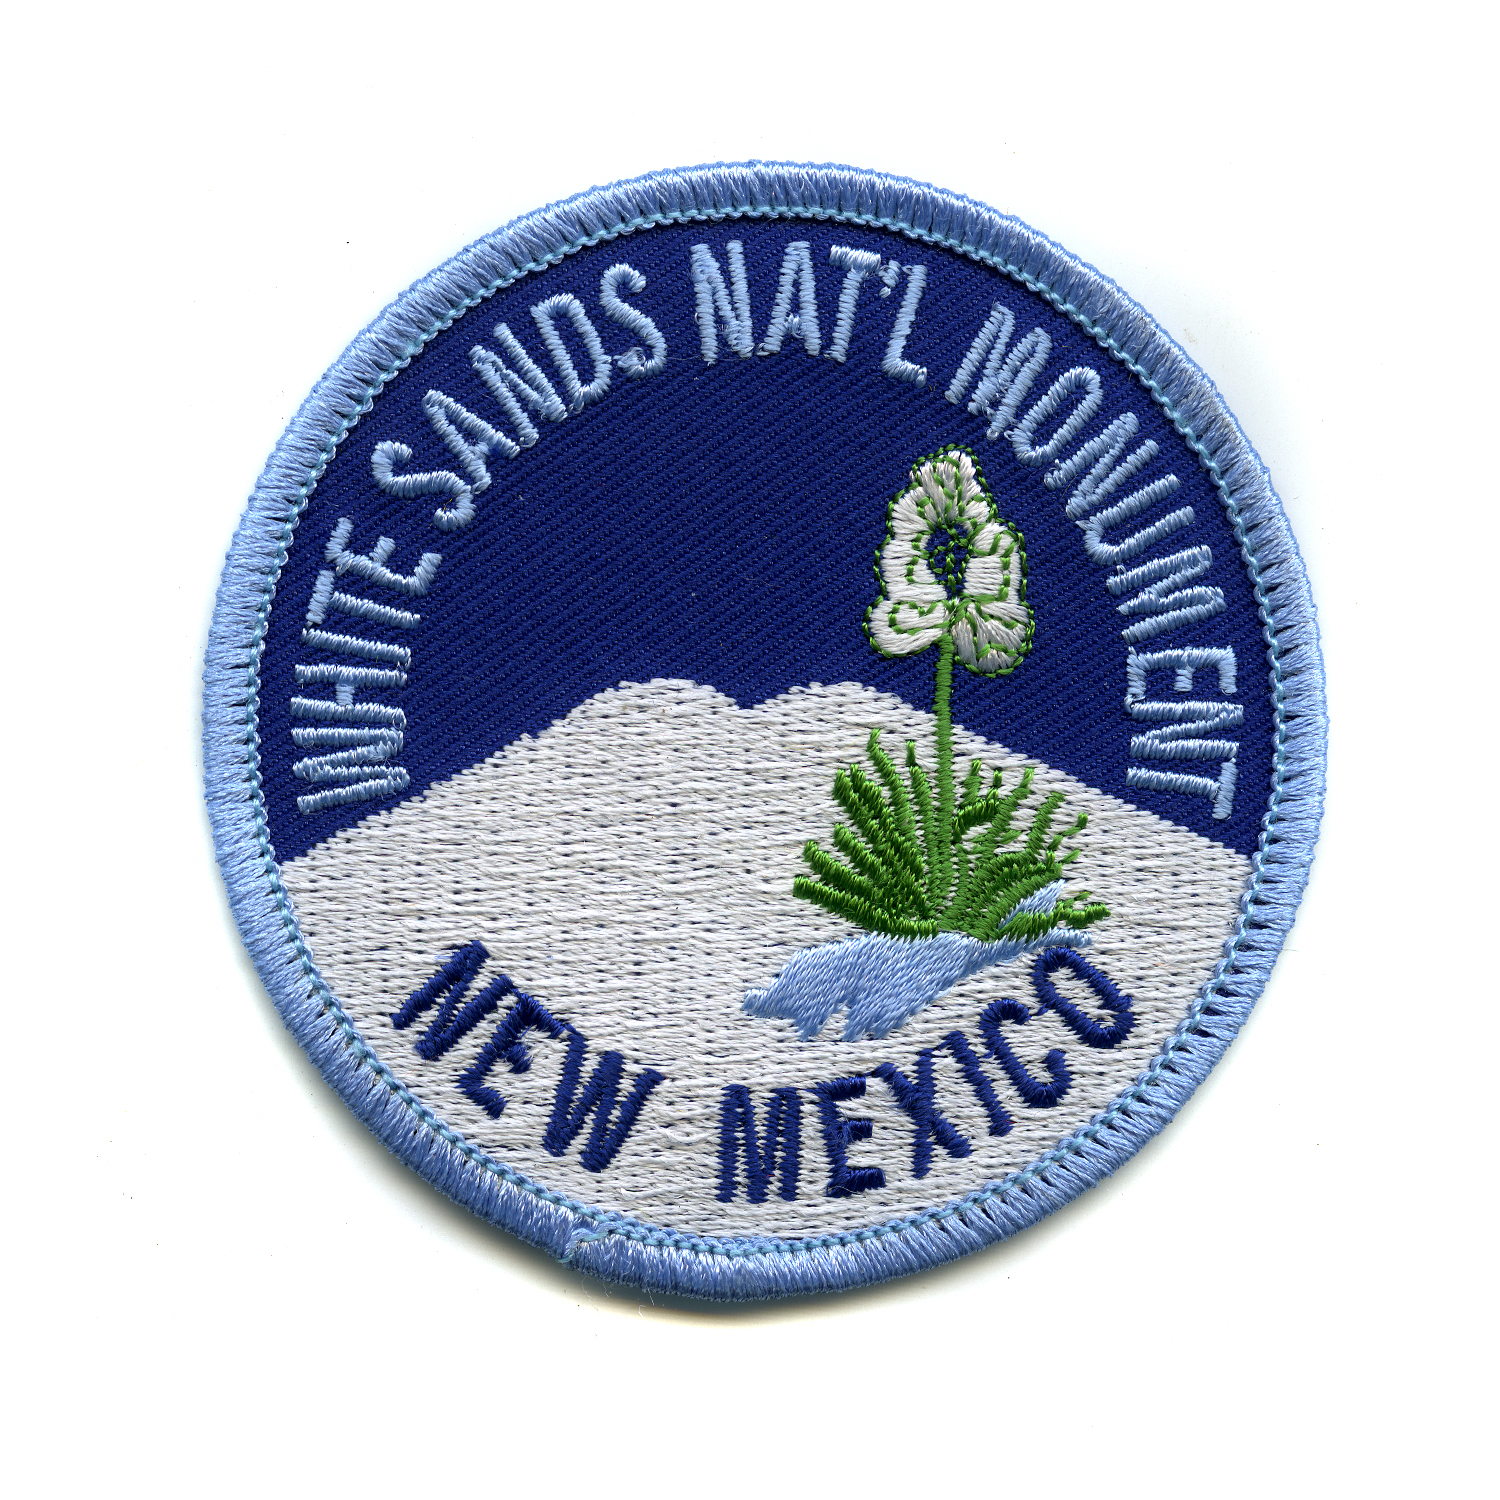 nps_patch_project_white_sands_national_monument_patch_1.jpg